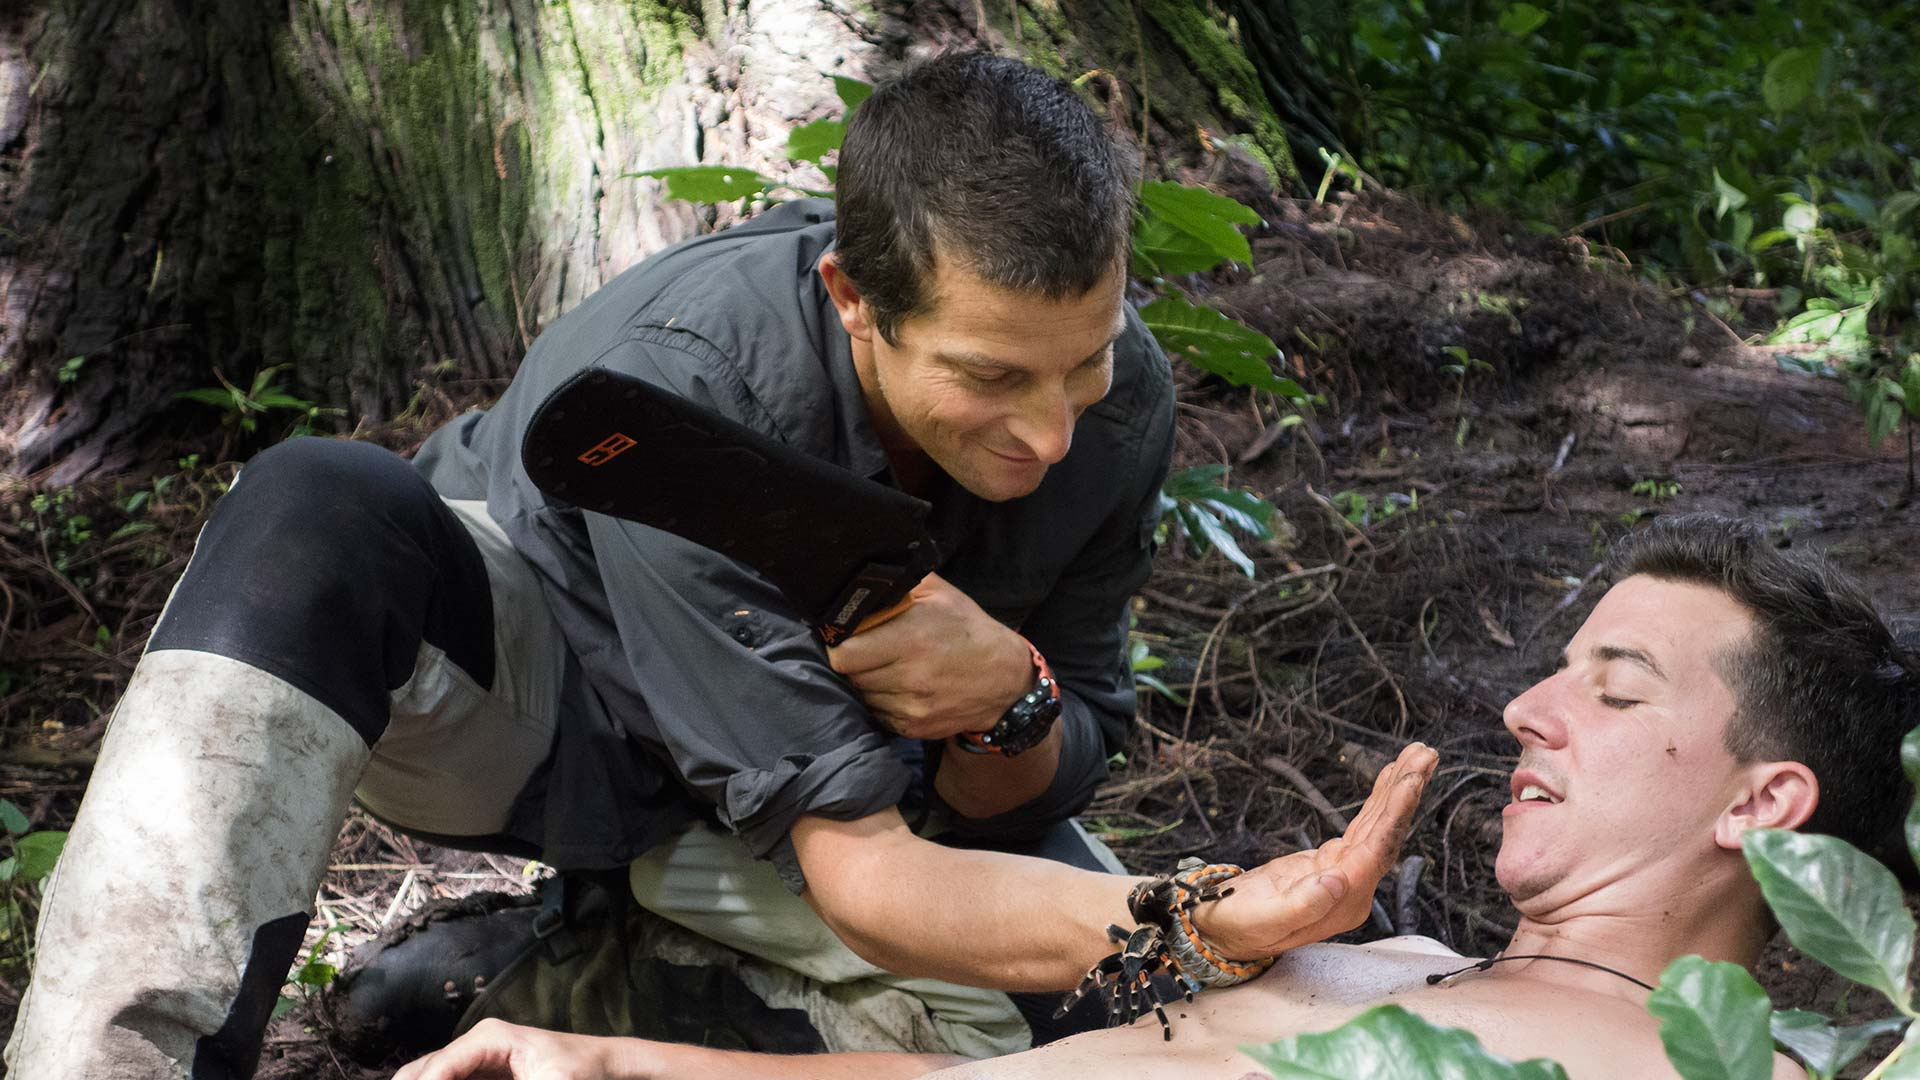 how to get on bear grylls show